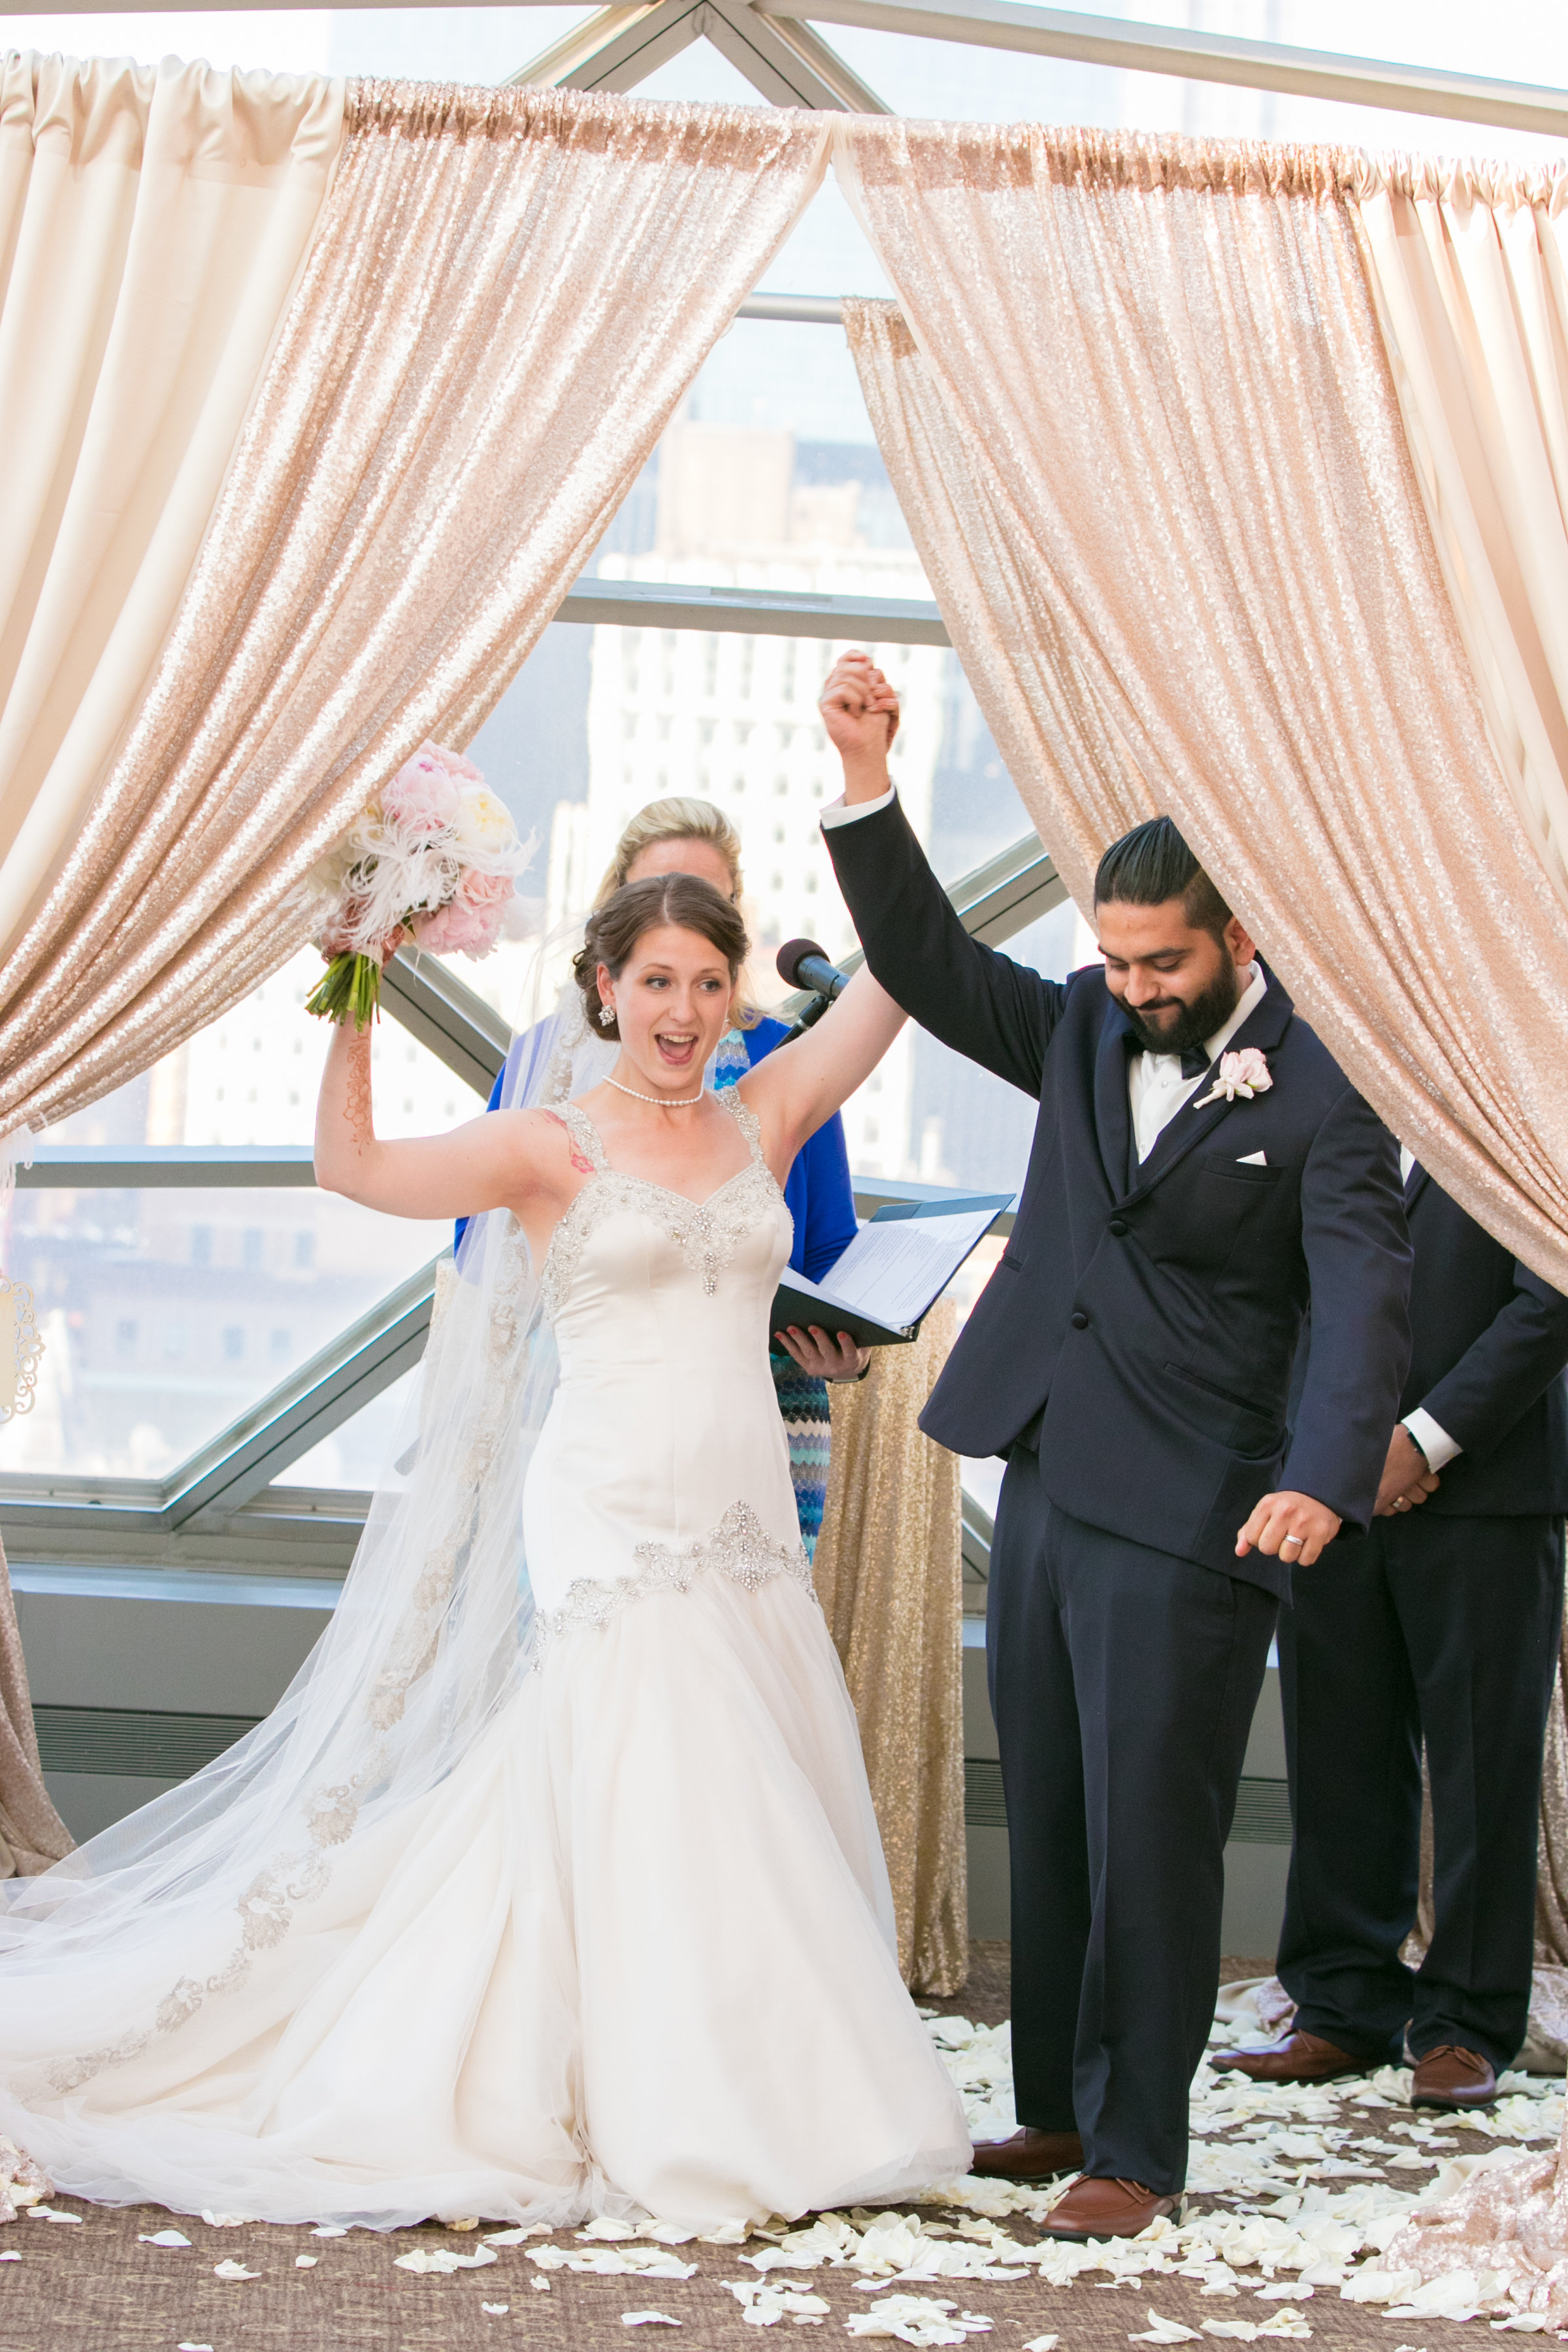 Photography: Kelly Brown Weddings |Planner: The Simply Elegant Group, Kerry  |Venue: Millennium Hotel Mpls  Hotel |Stationary: Minted |DJ: Instant Request | Florals: Sadie's Floral | Linens/Rentals  Linen Effects & Avant | Hair: 139 Hair by Heidi | Bakery: Queen of Cakes